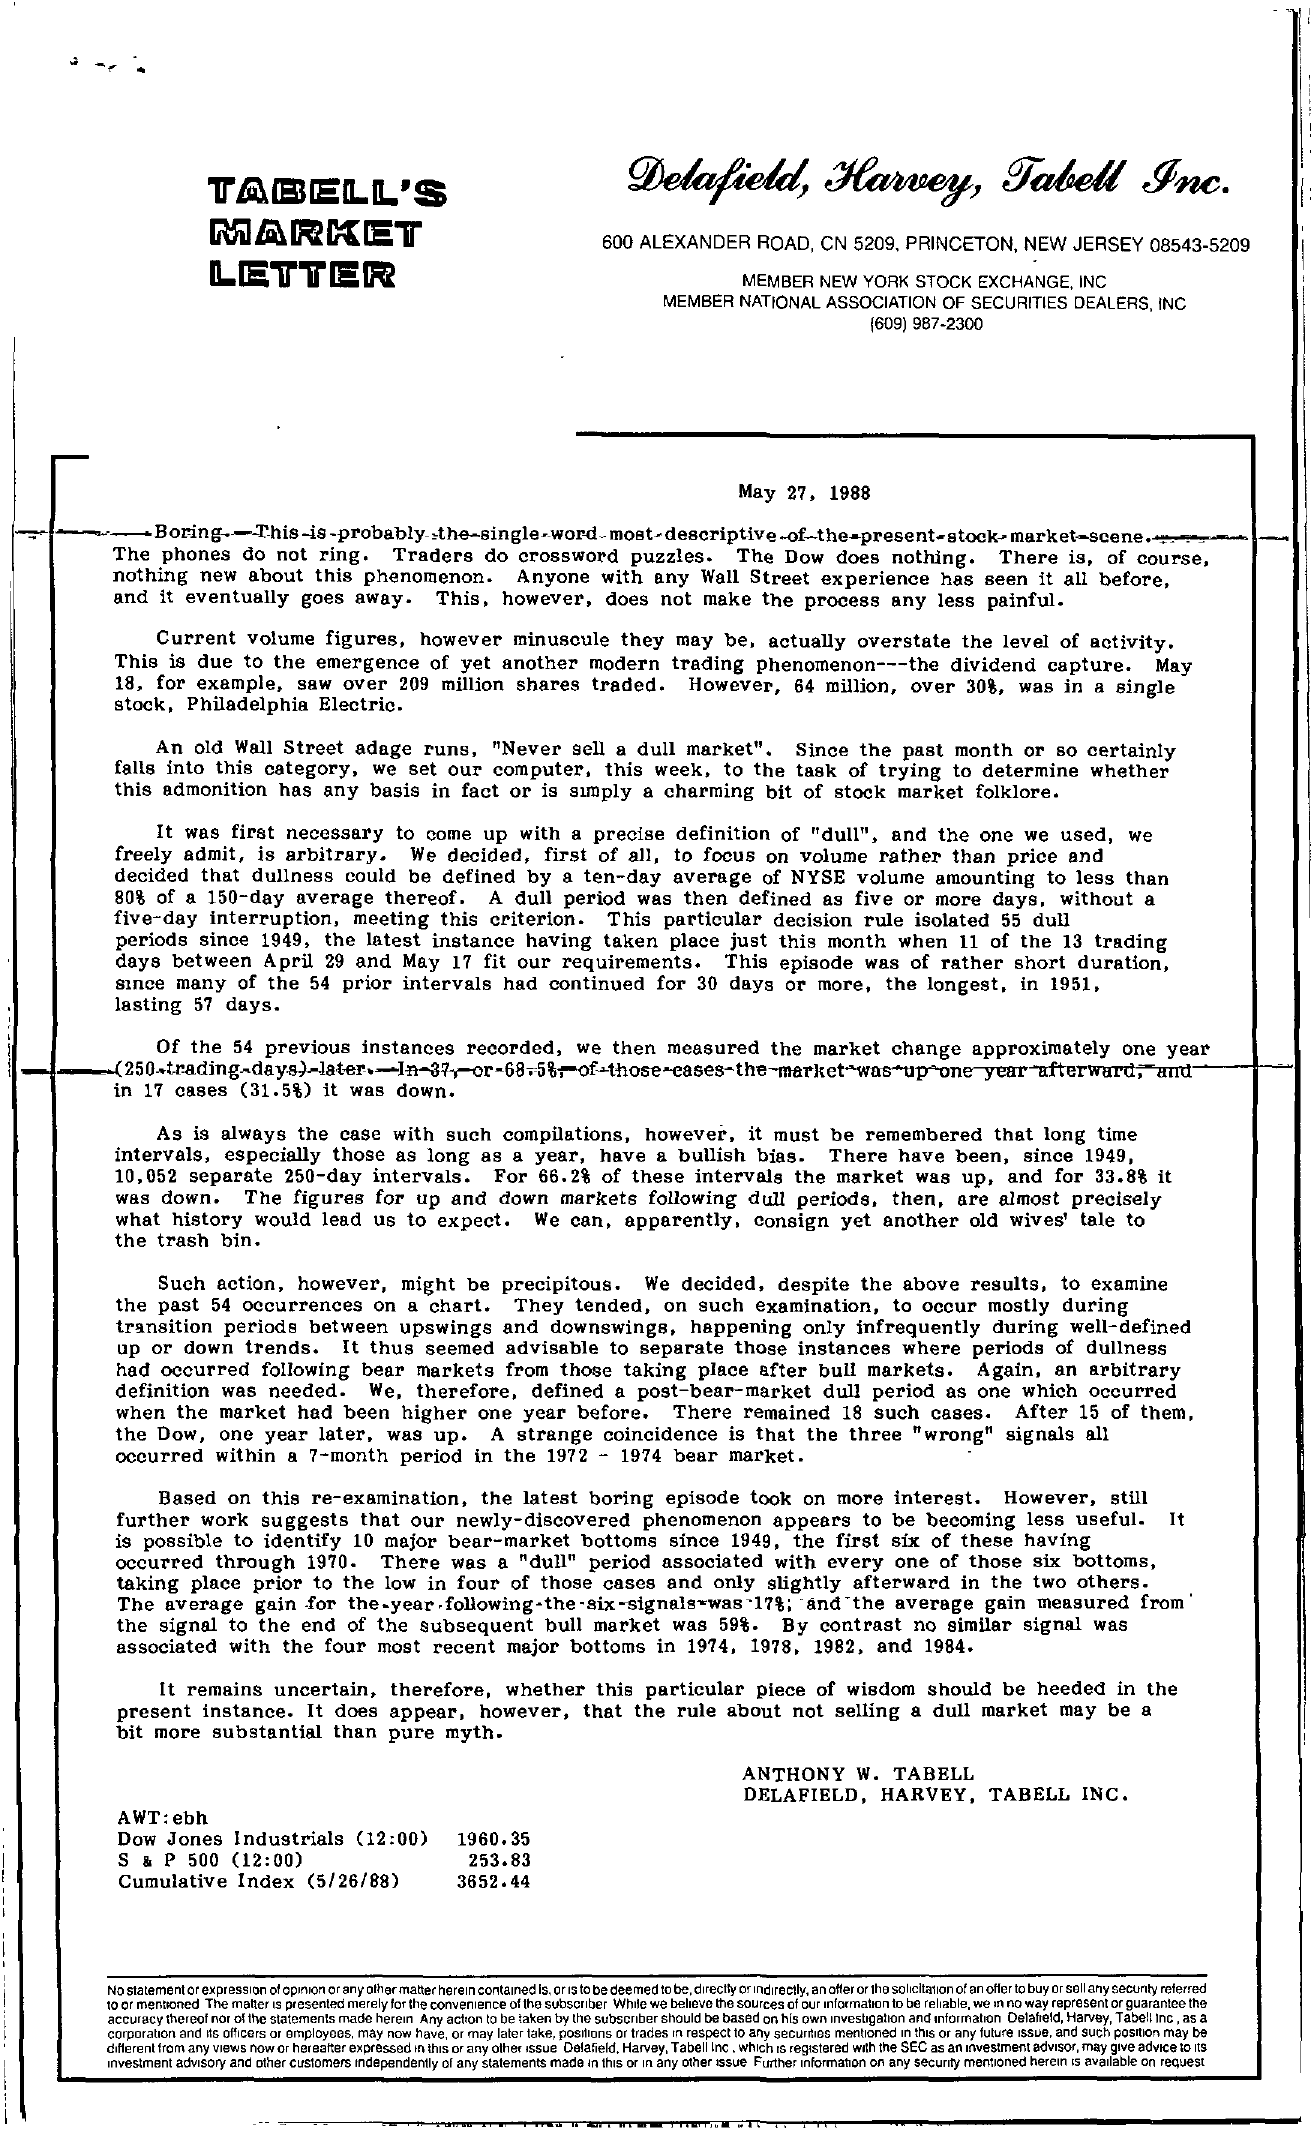 Tabell's Market Letter - May 27, 1988